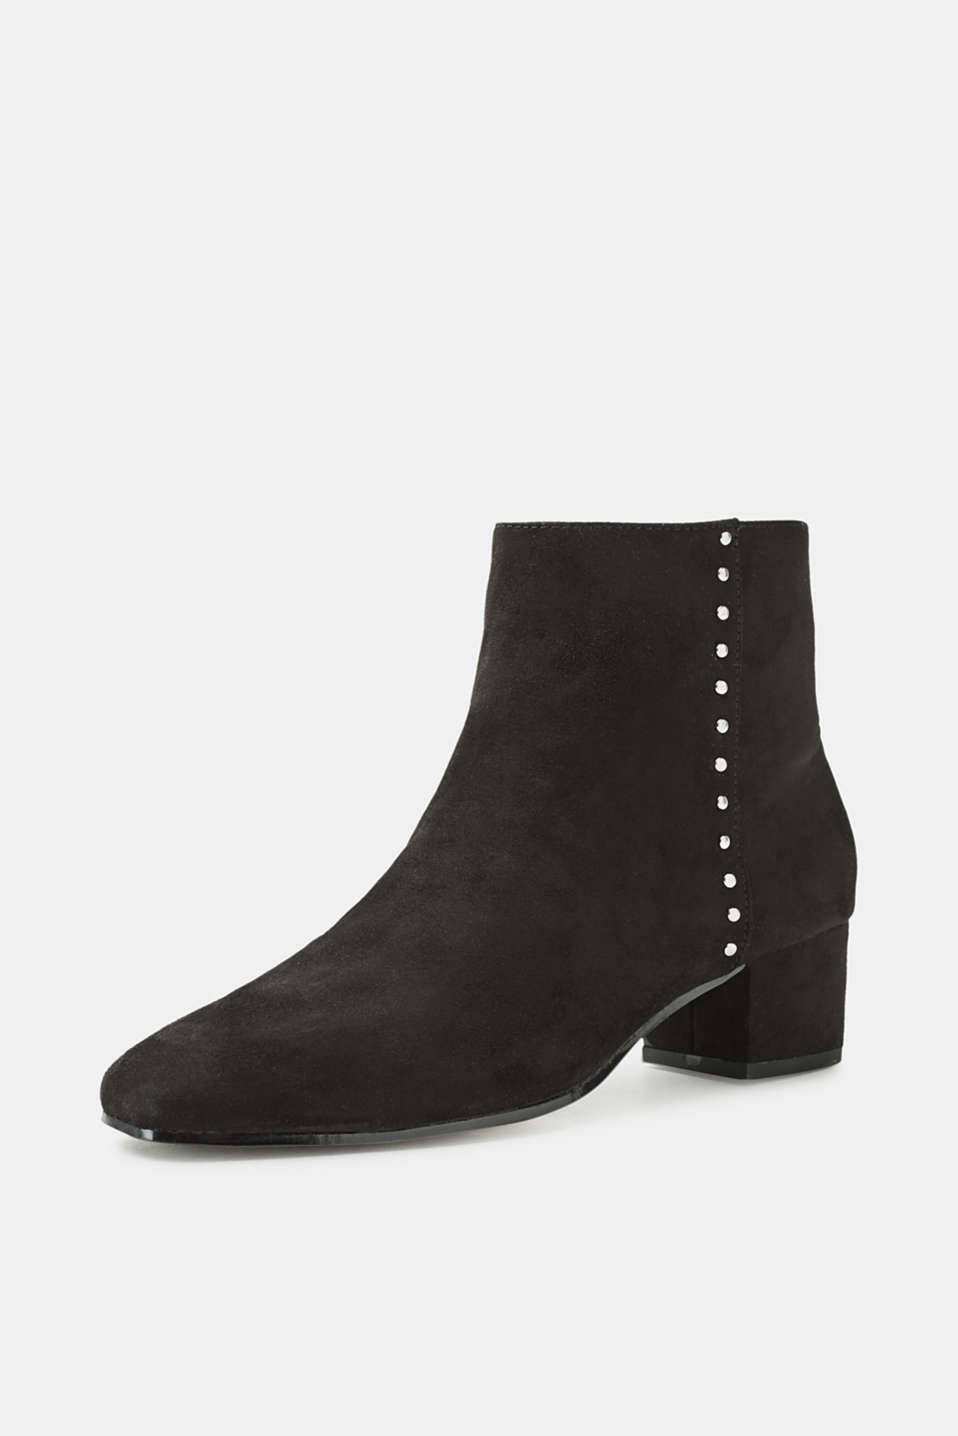 Ankle boots with a block heel, in faux suede